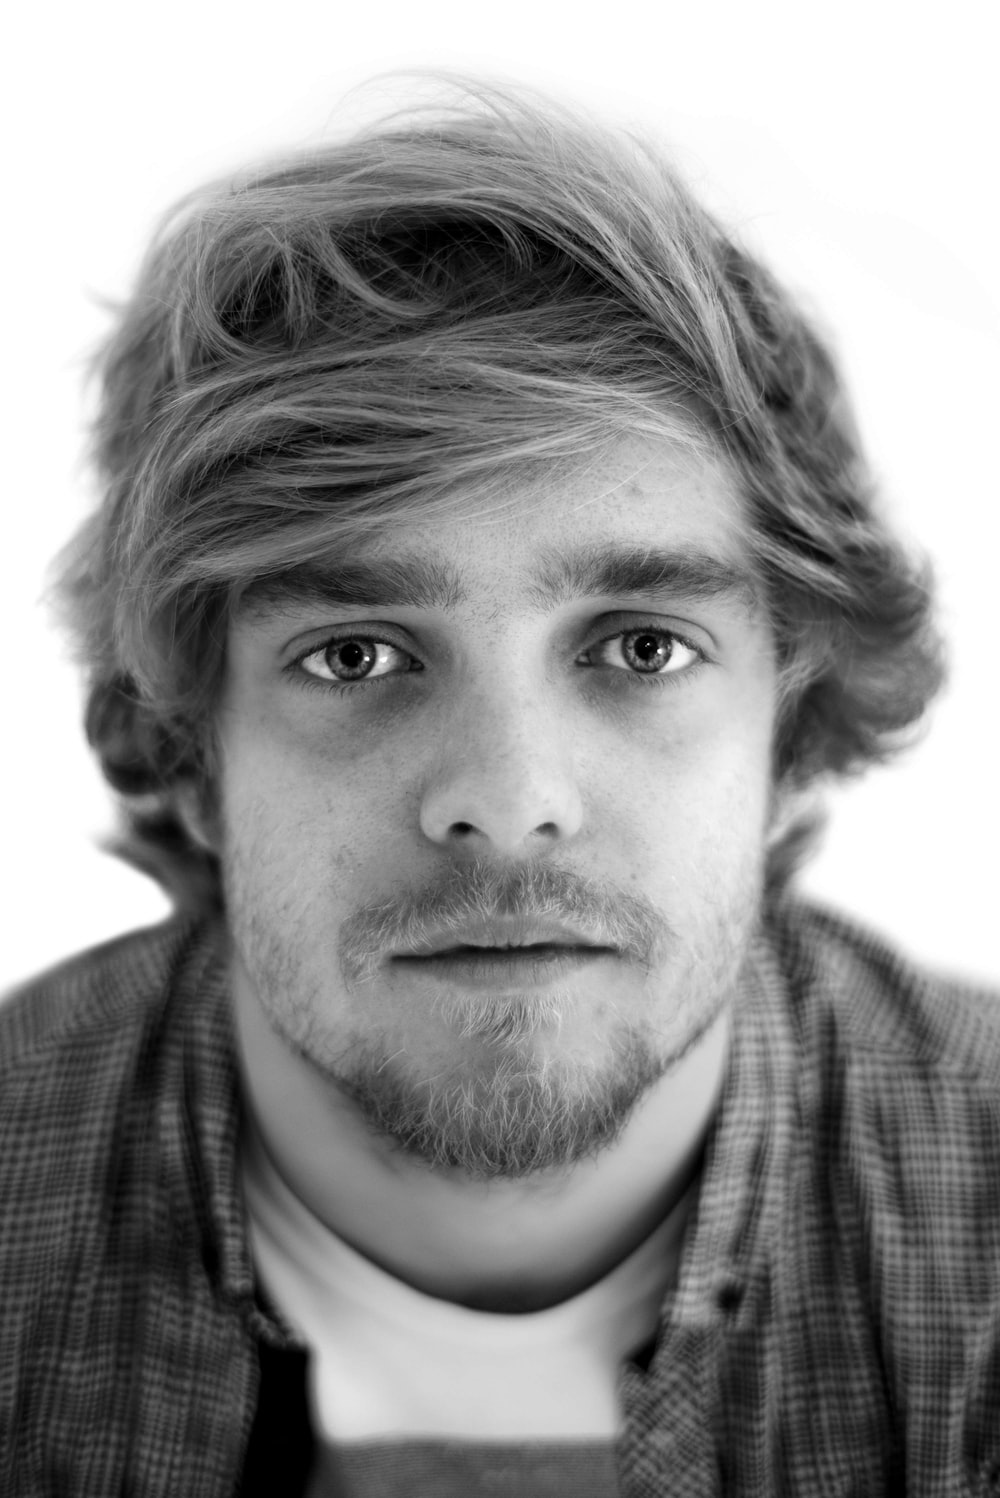 grayscale photo of man in flannel shirt